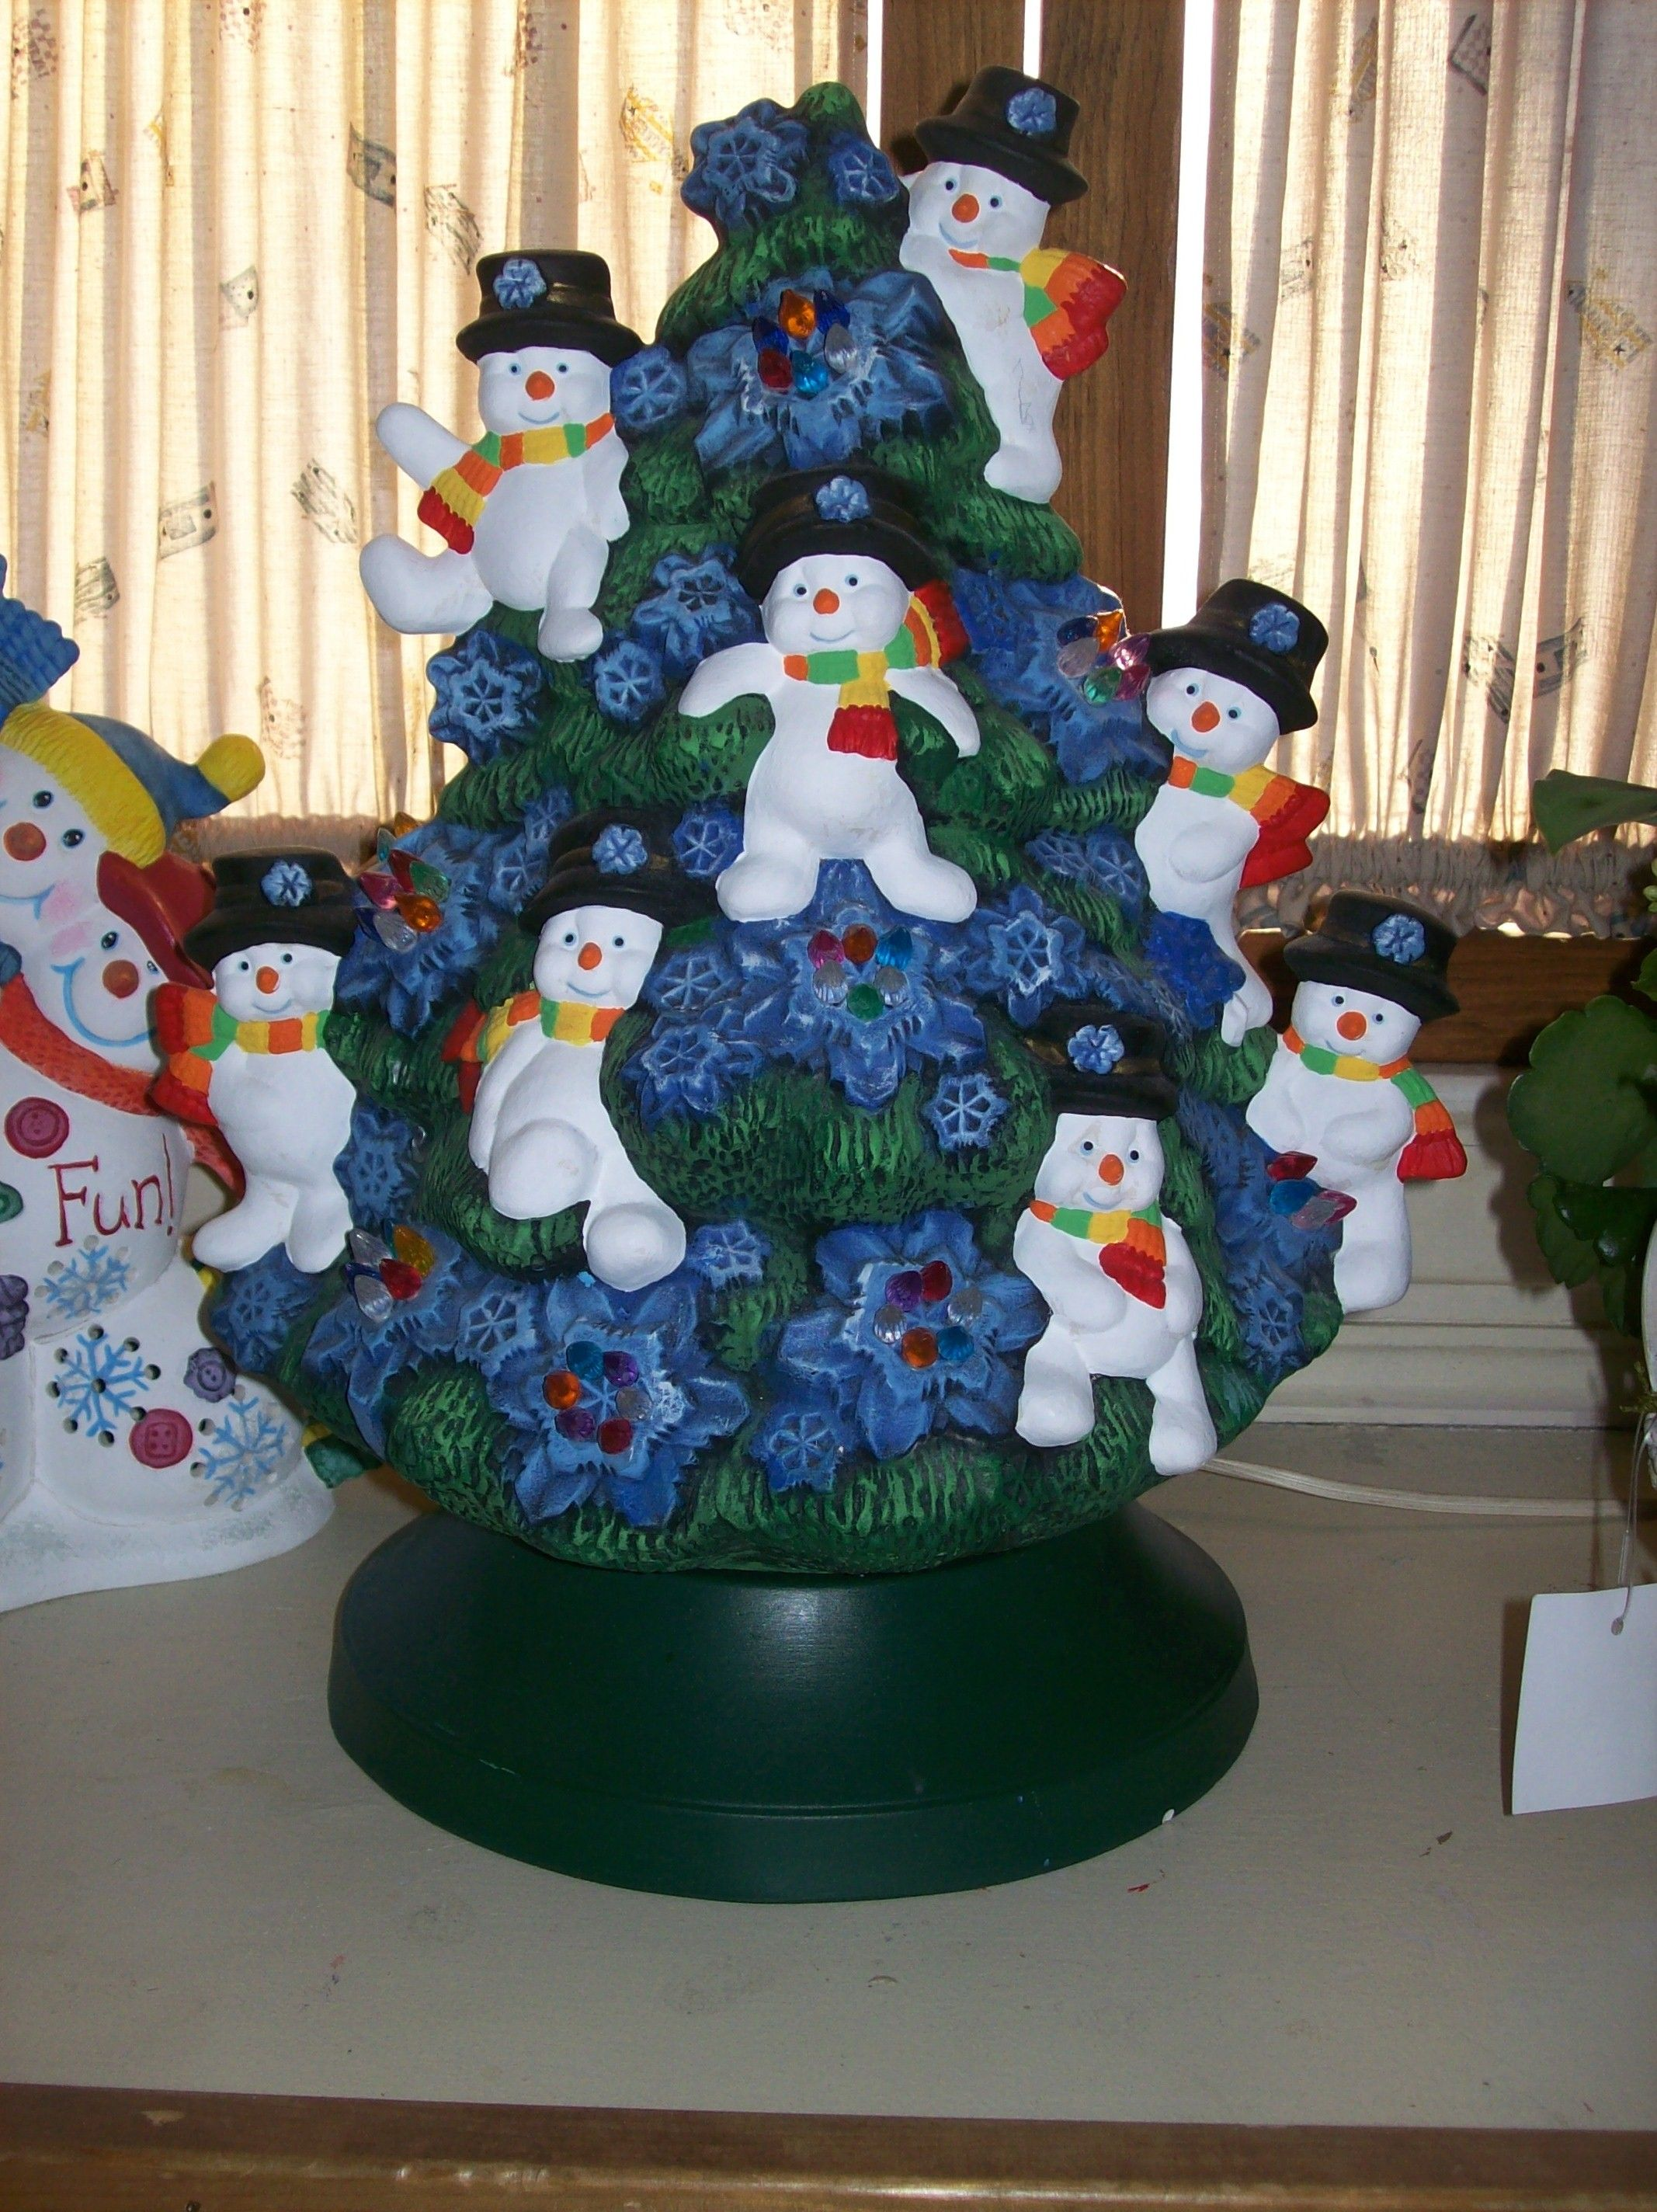 Hand Painted Ceramic Snowman Christmas Tree Christmas Crafts